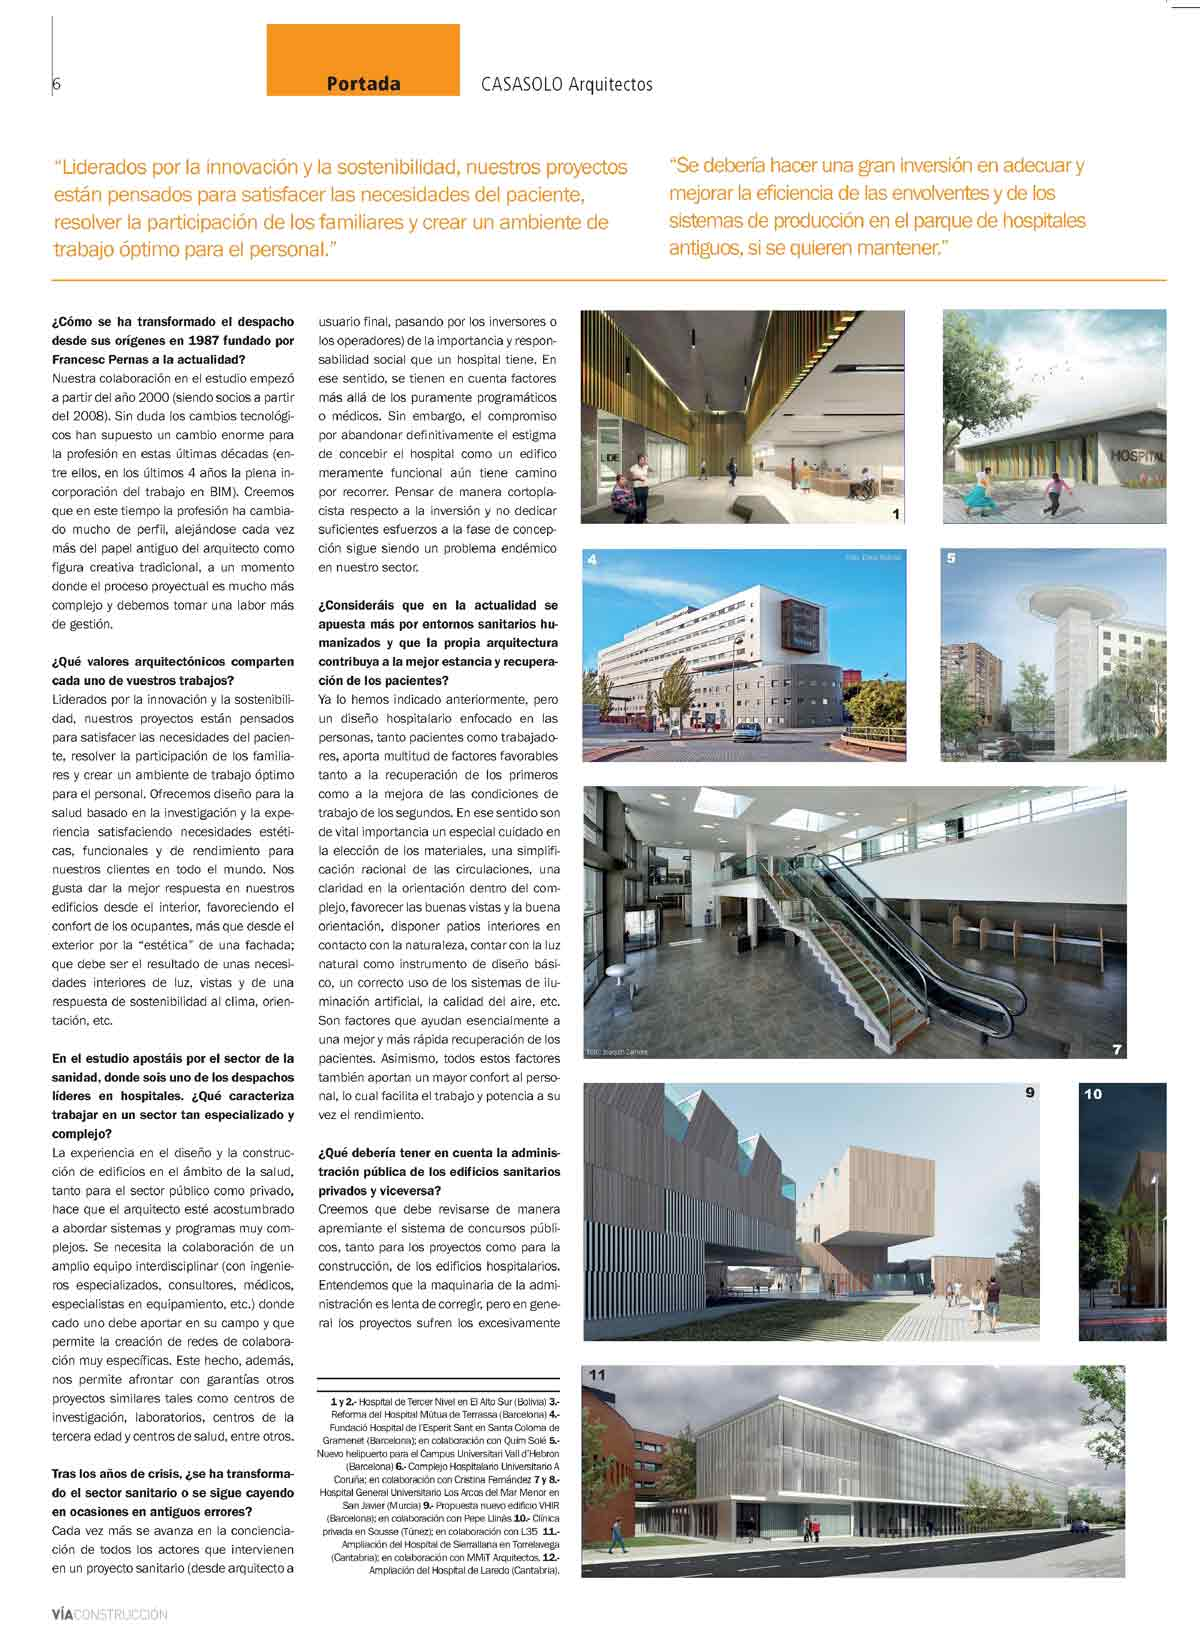 portada-revista-via-construccion-04